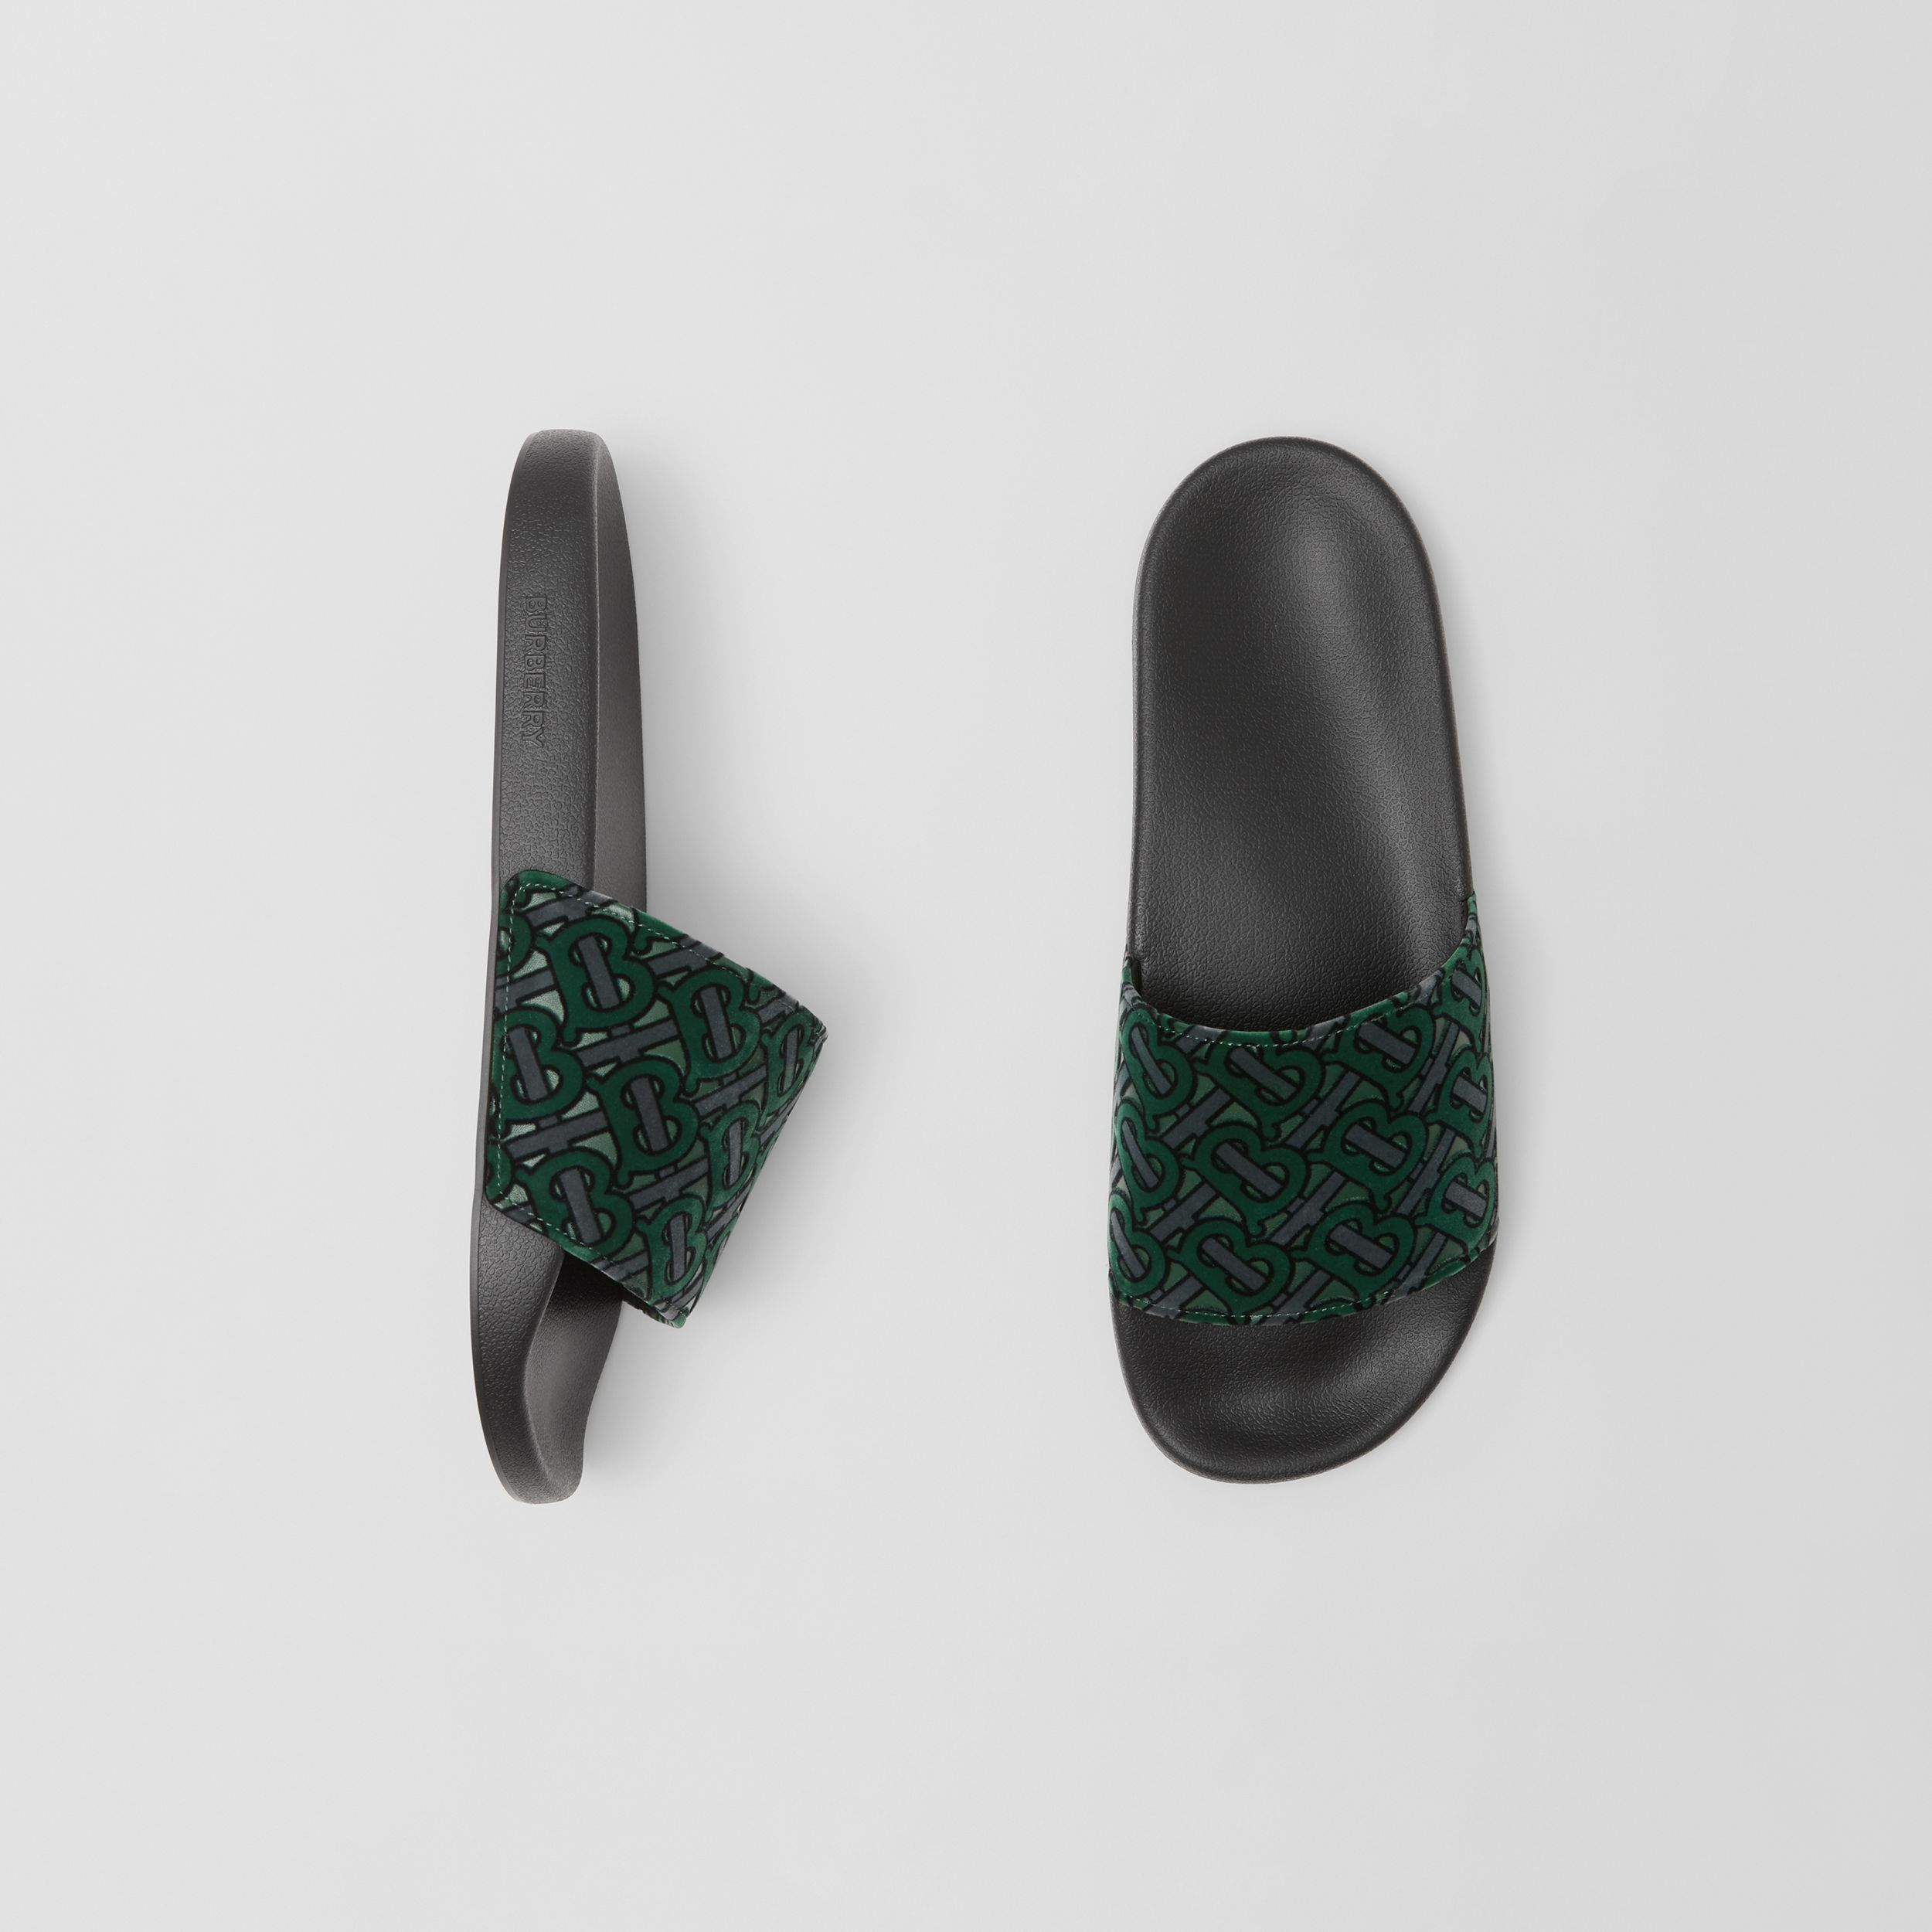 Monogram Flocked Leather Slides in Dark Forest Green - Men | Burberry - 1